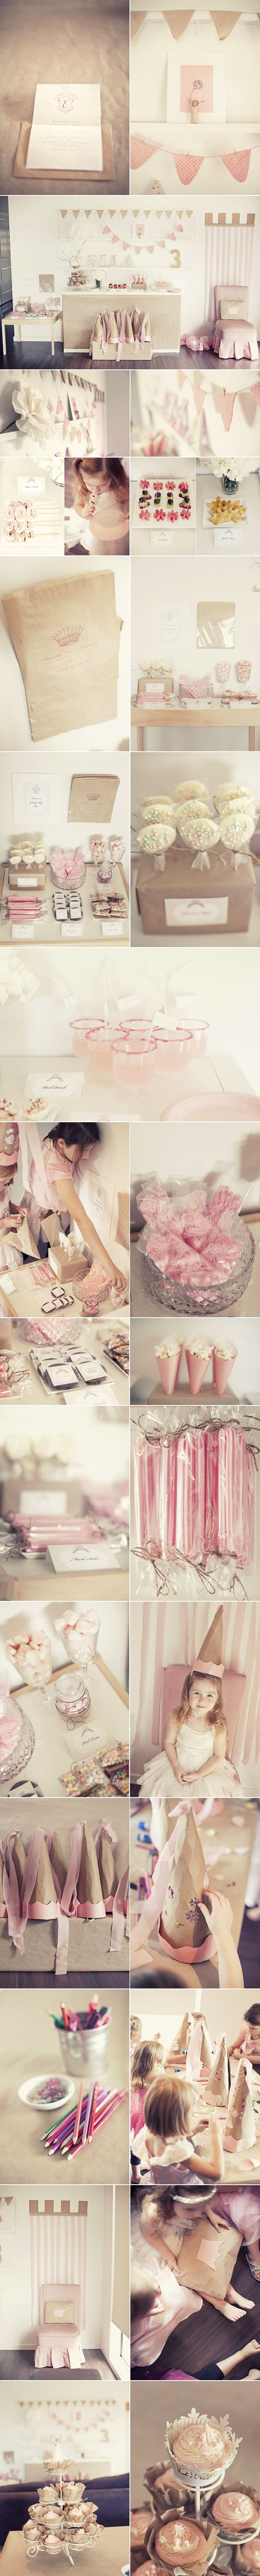 cute ideas for princess party